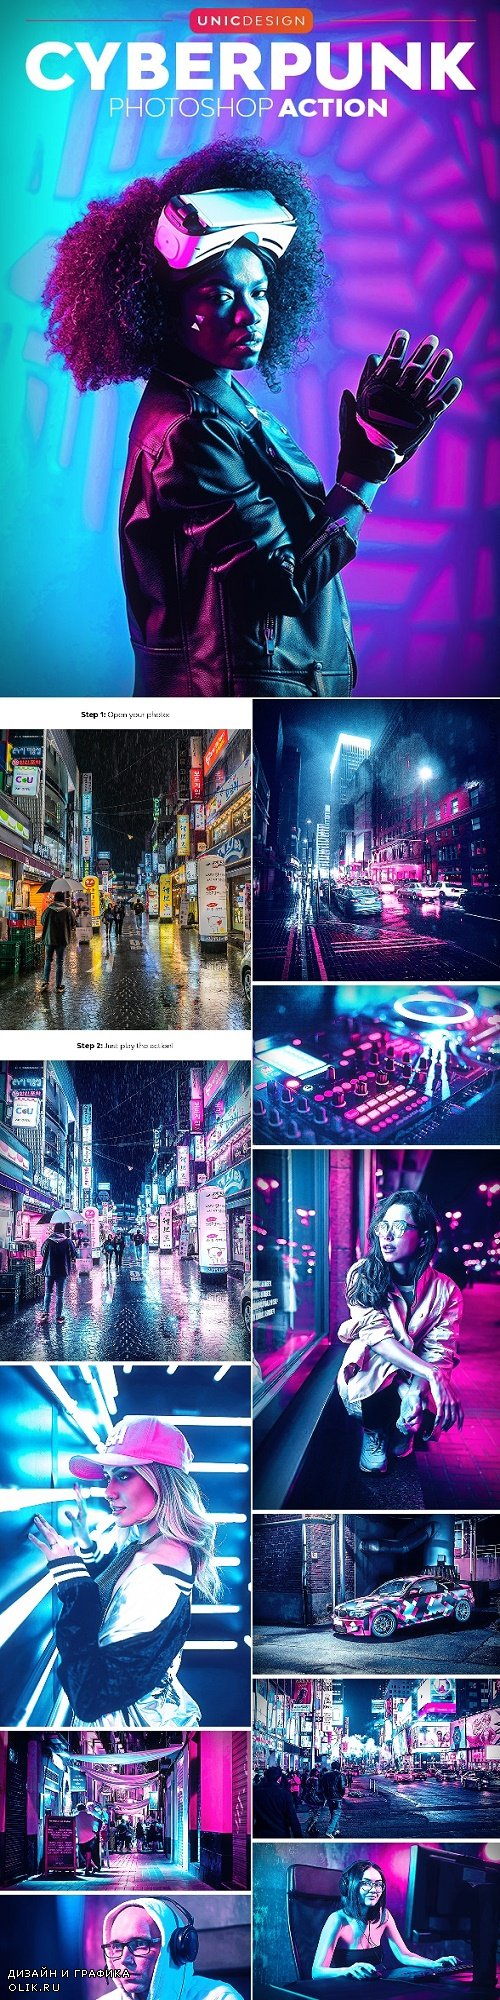 CyberPunk Photoshop Action - 24648553